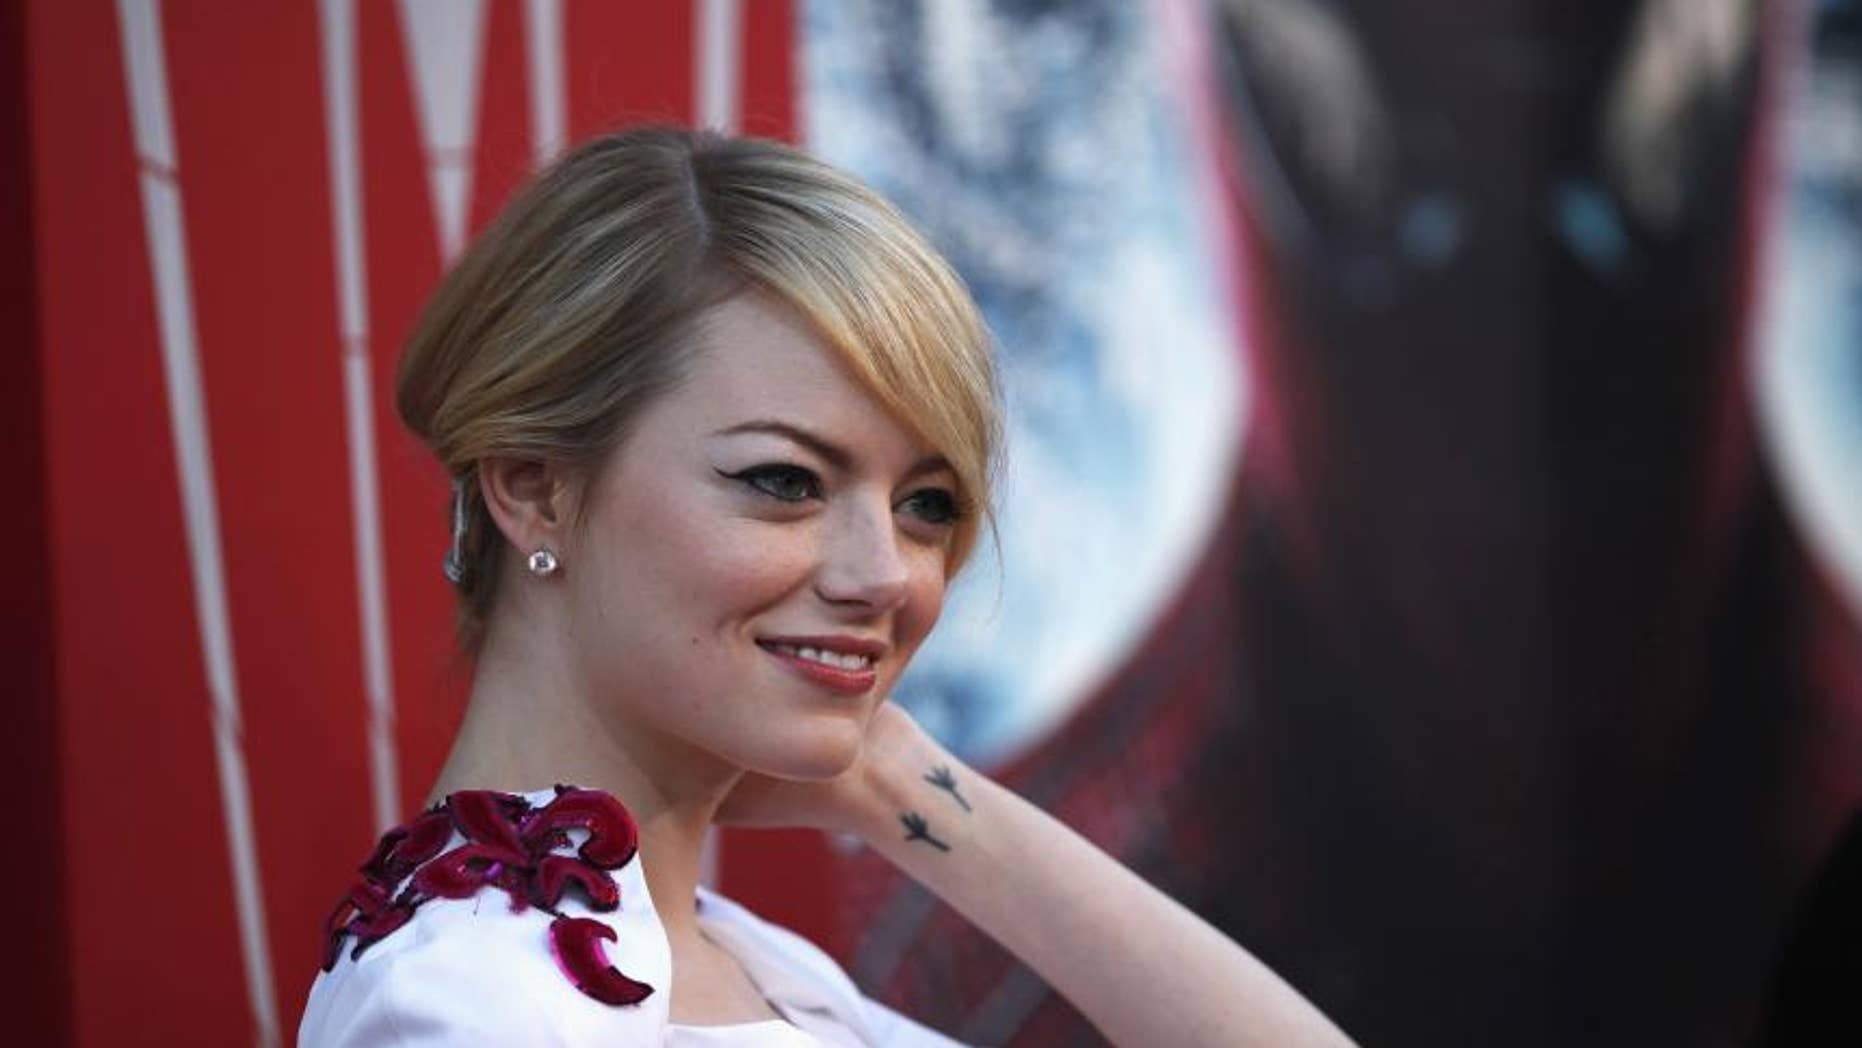 Actress Emma Stone says her 'organs shifted' after wearing a corset for a month for a movie role.